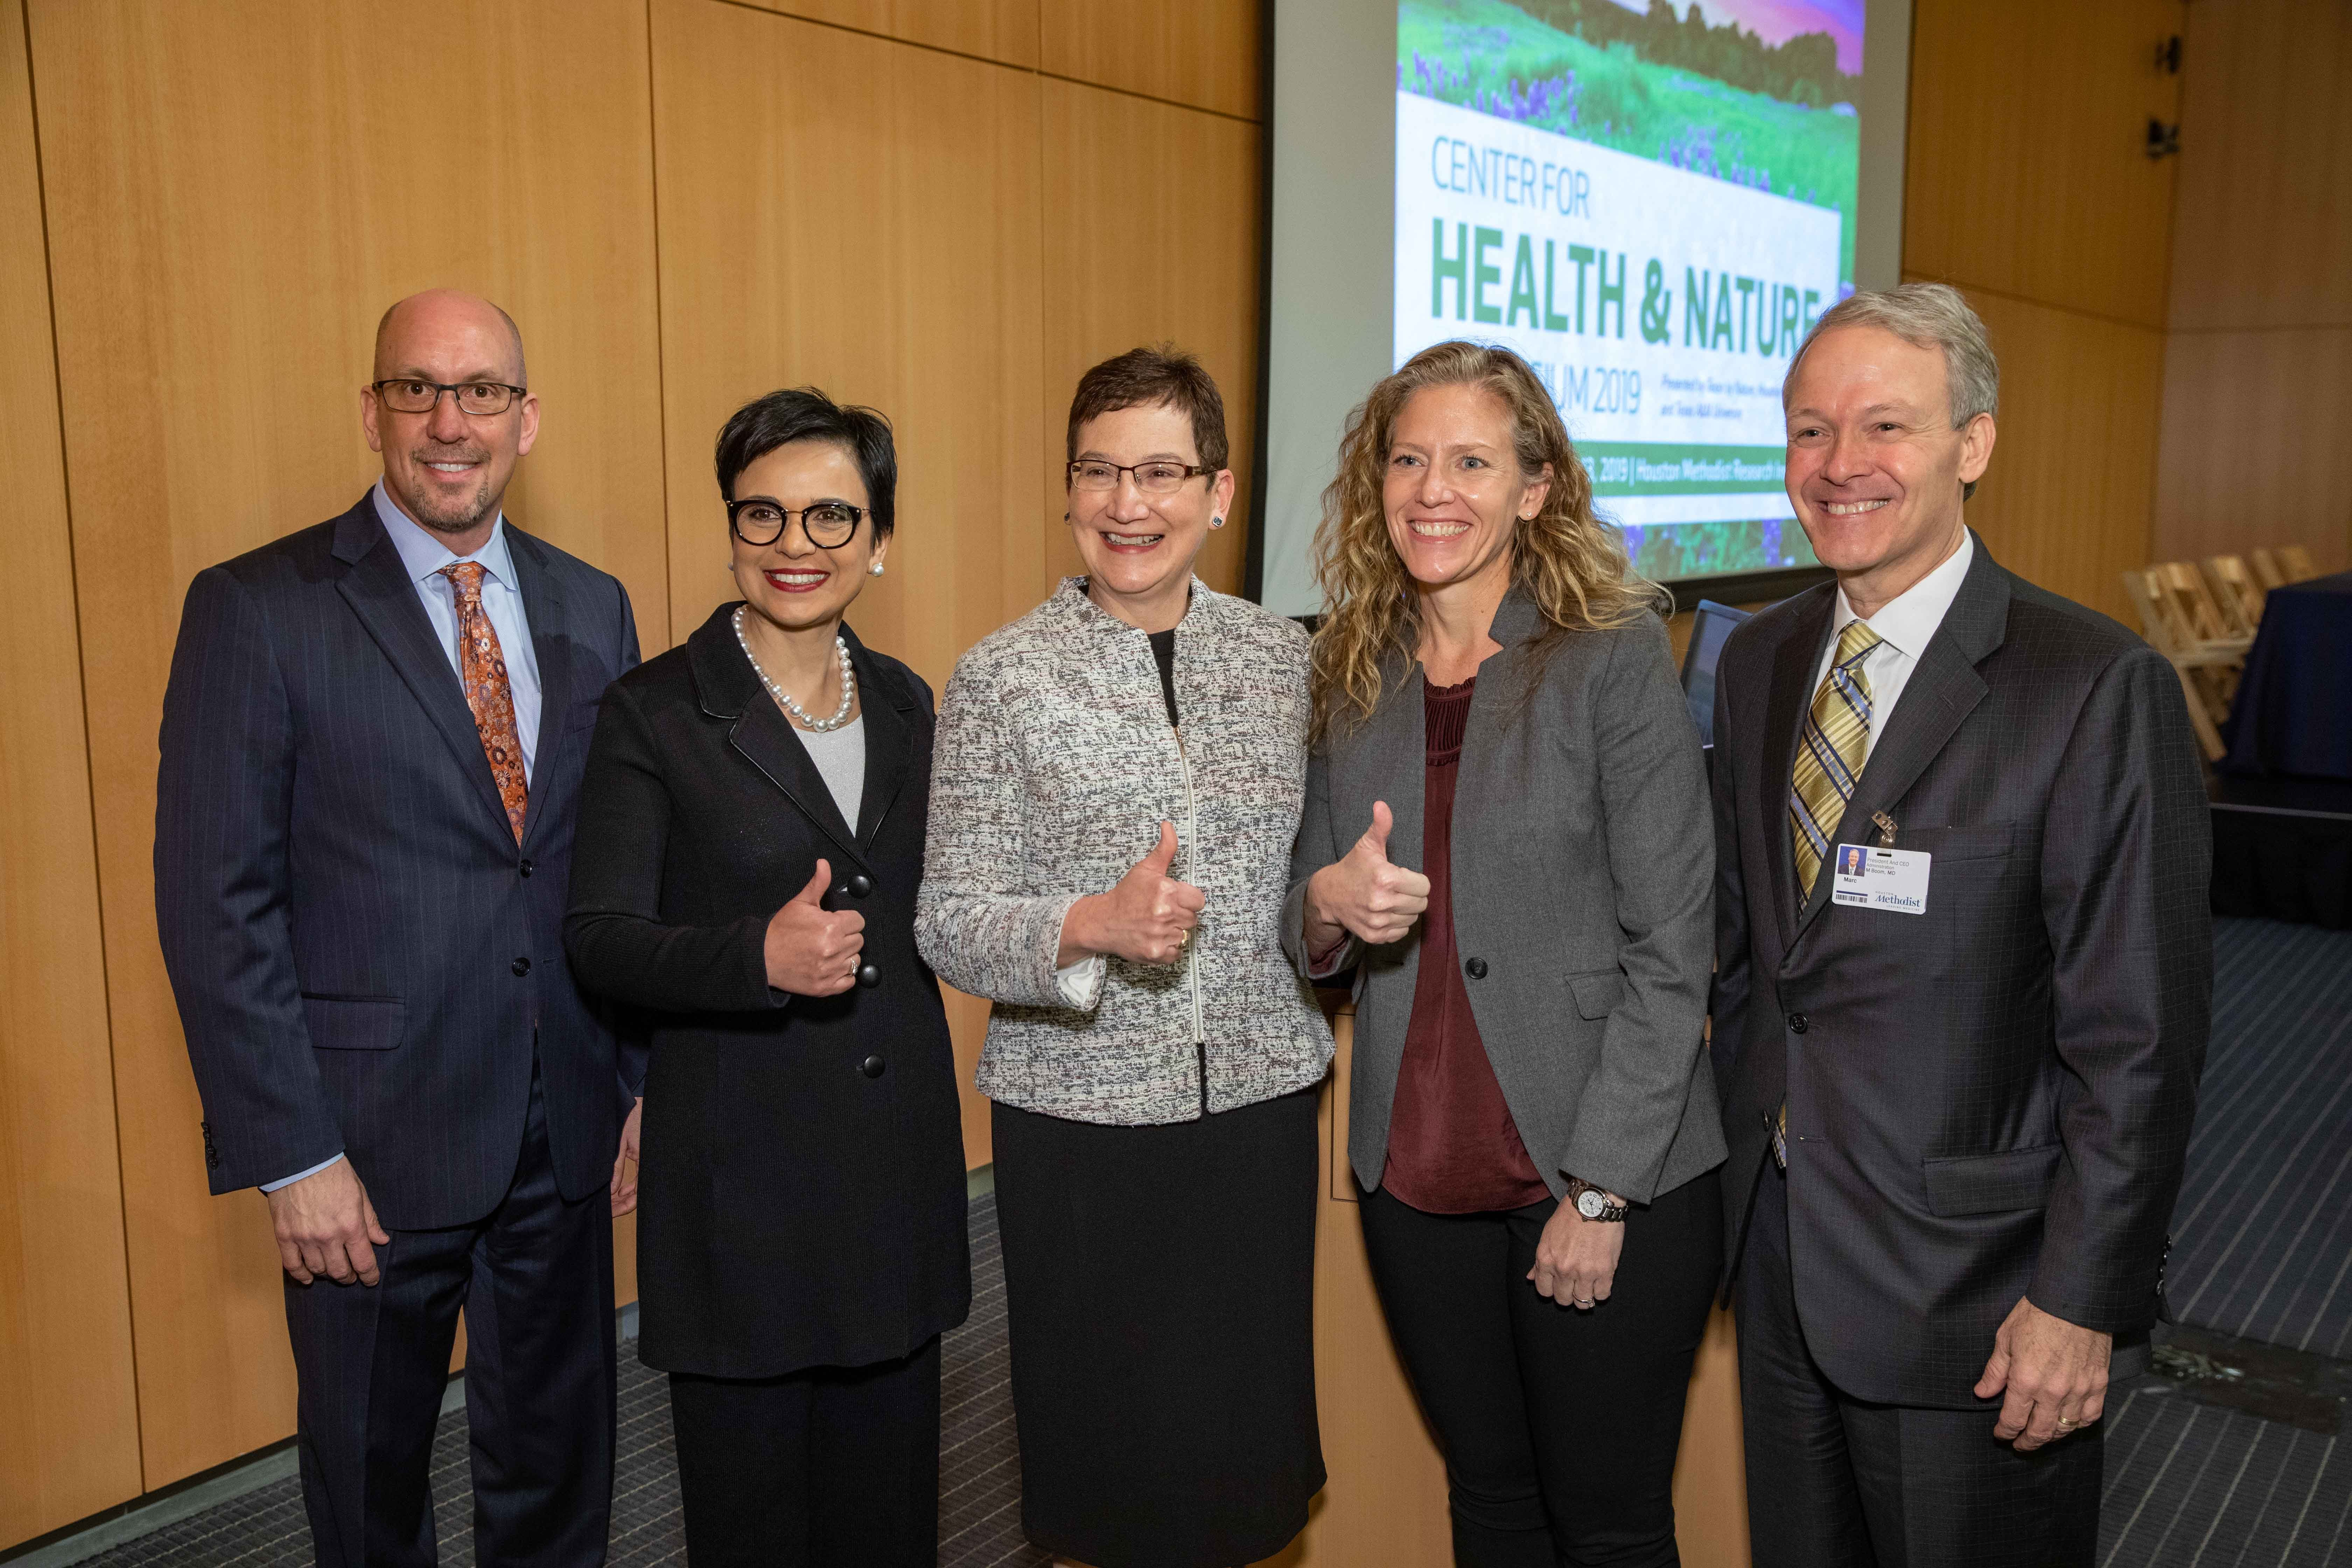 Leadership Team – Center for Health & Nature